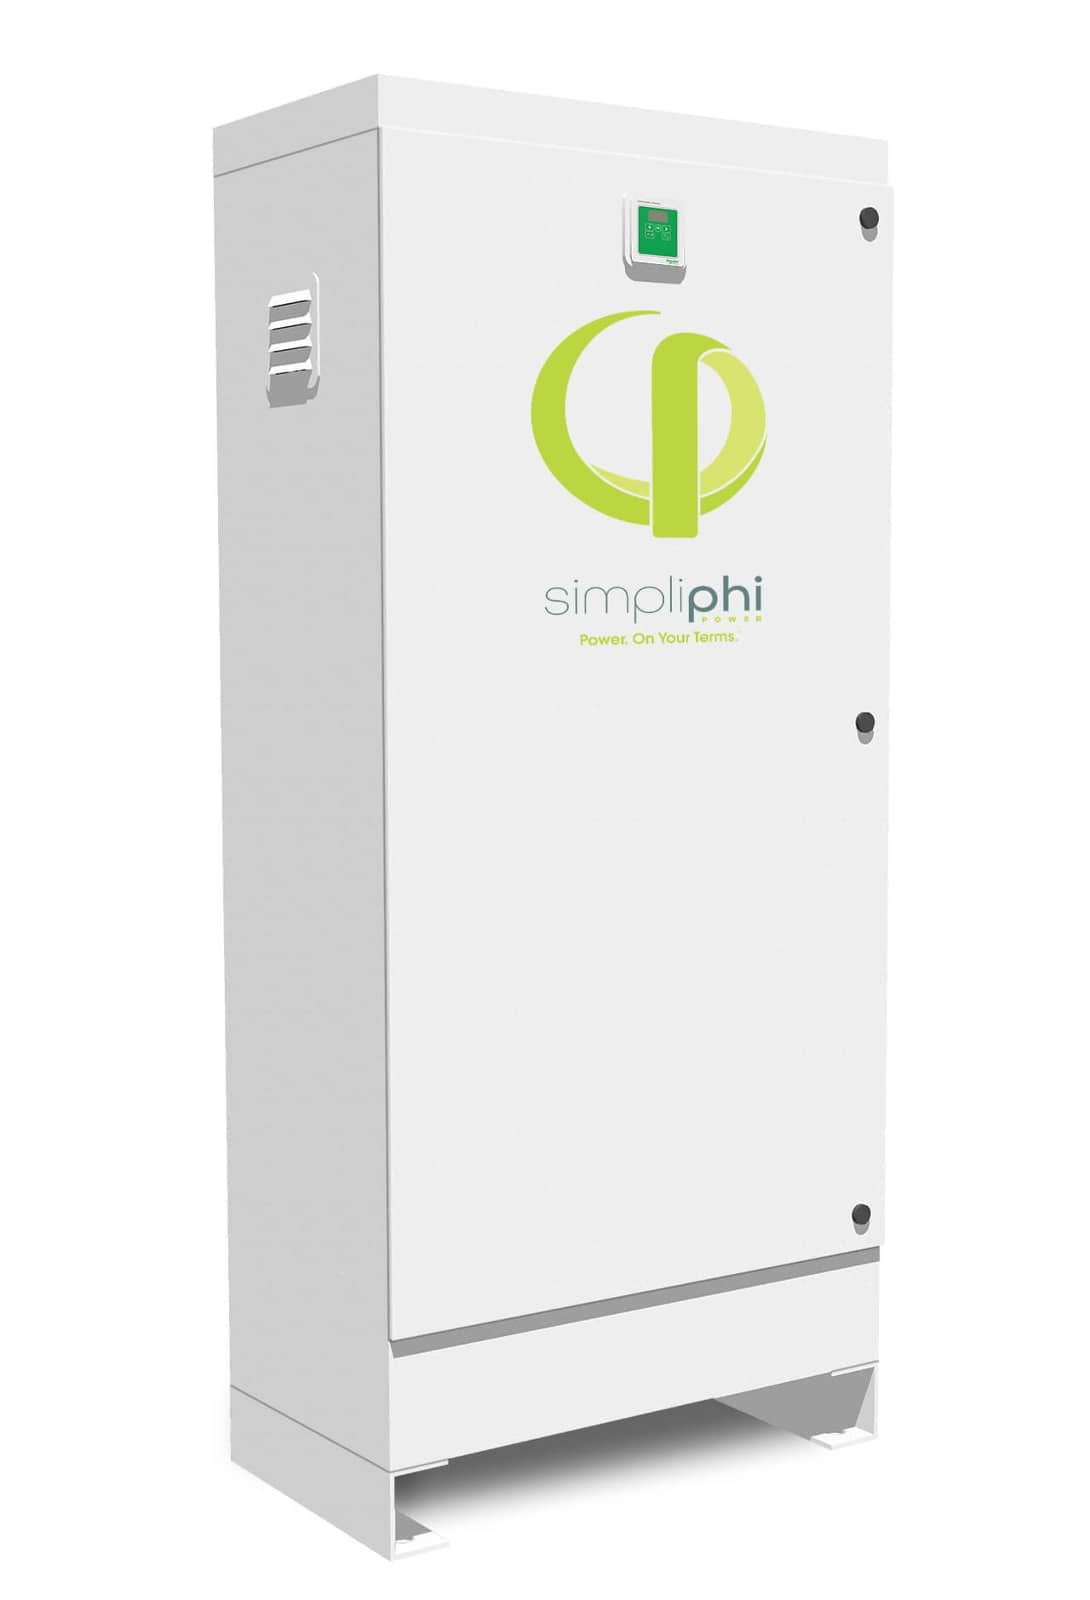 http://solarindustrymag.com/simpliphi-power-offers-integrated-storage-system-for-solar